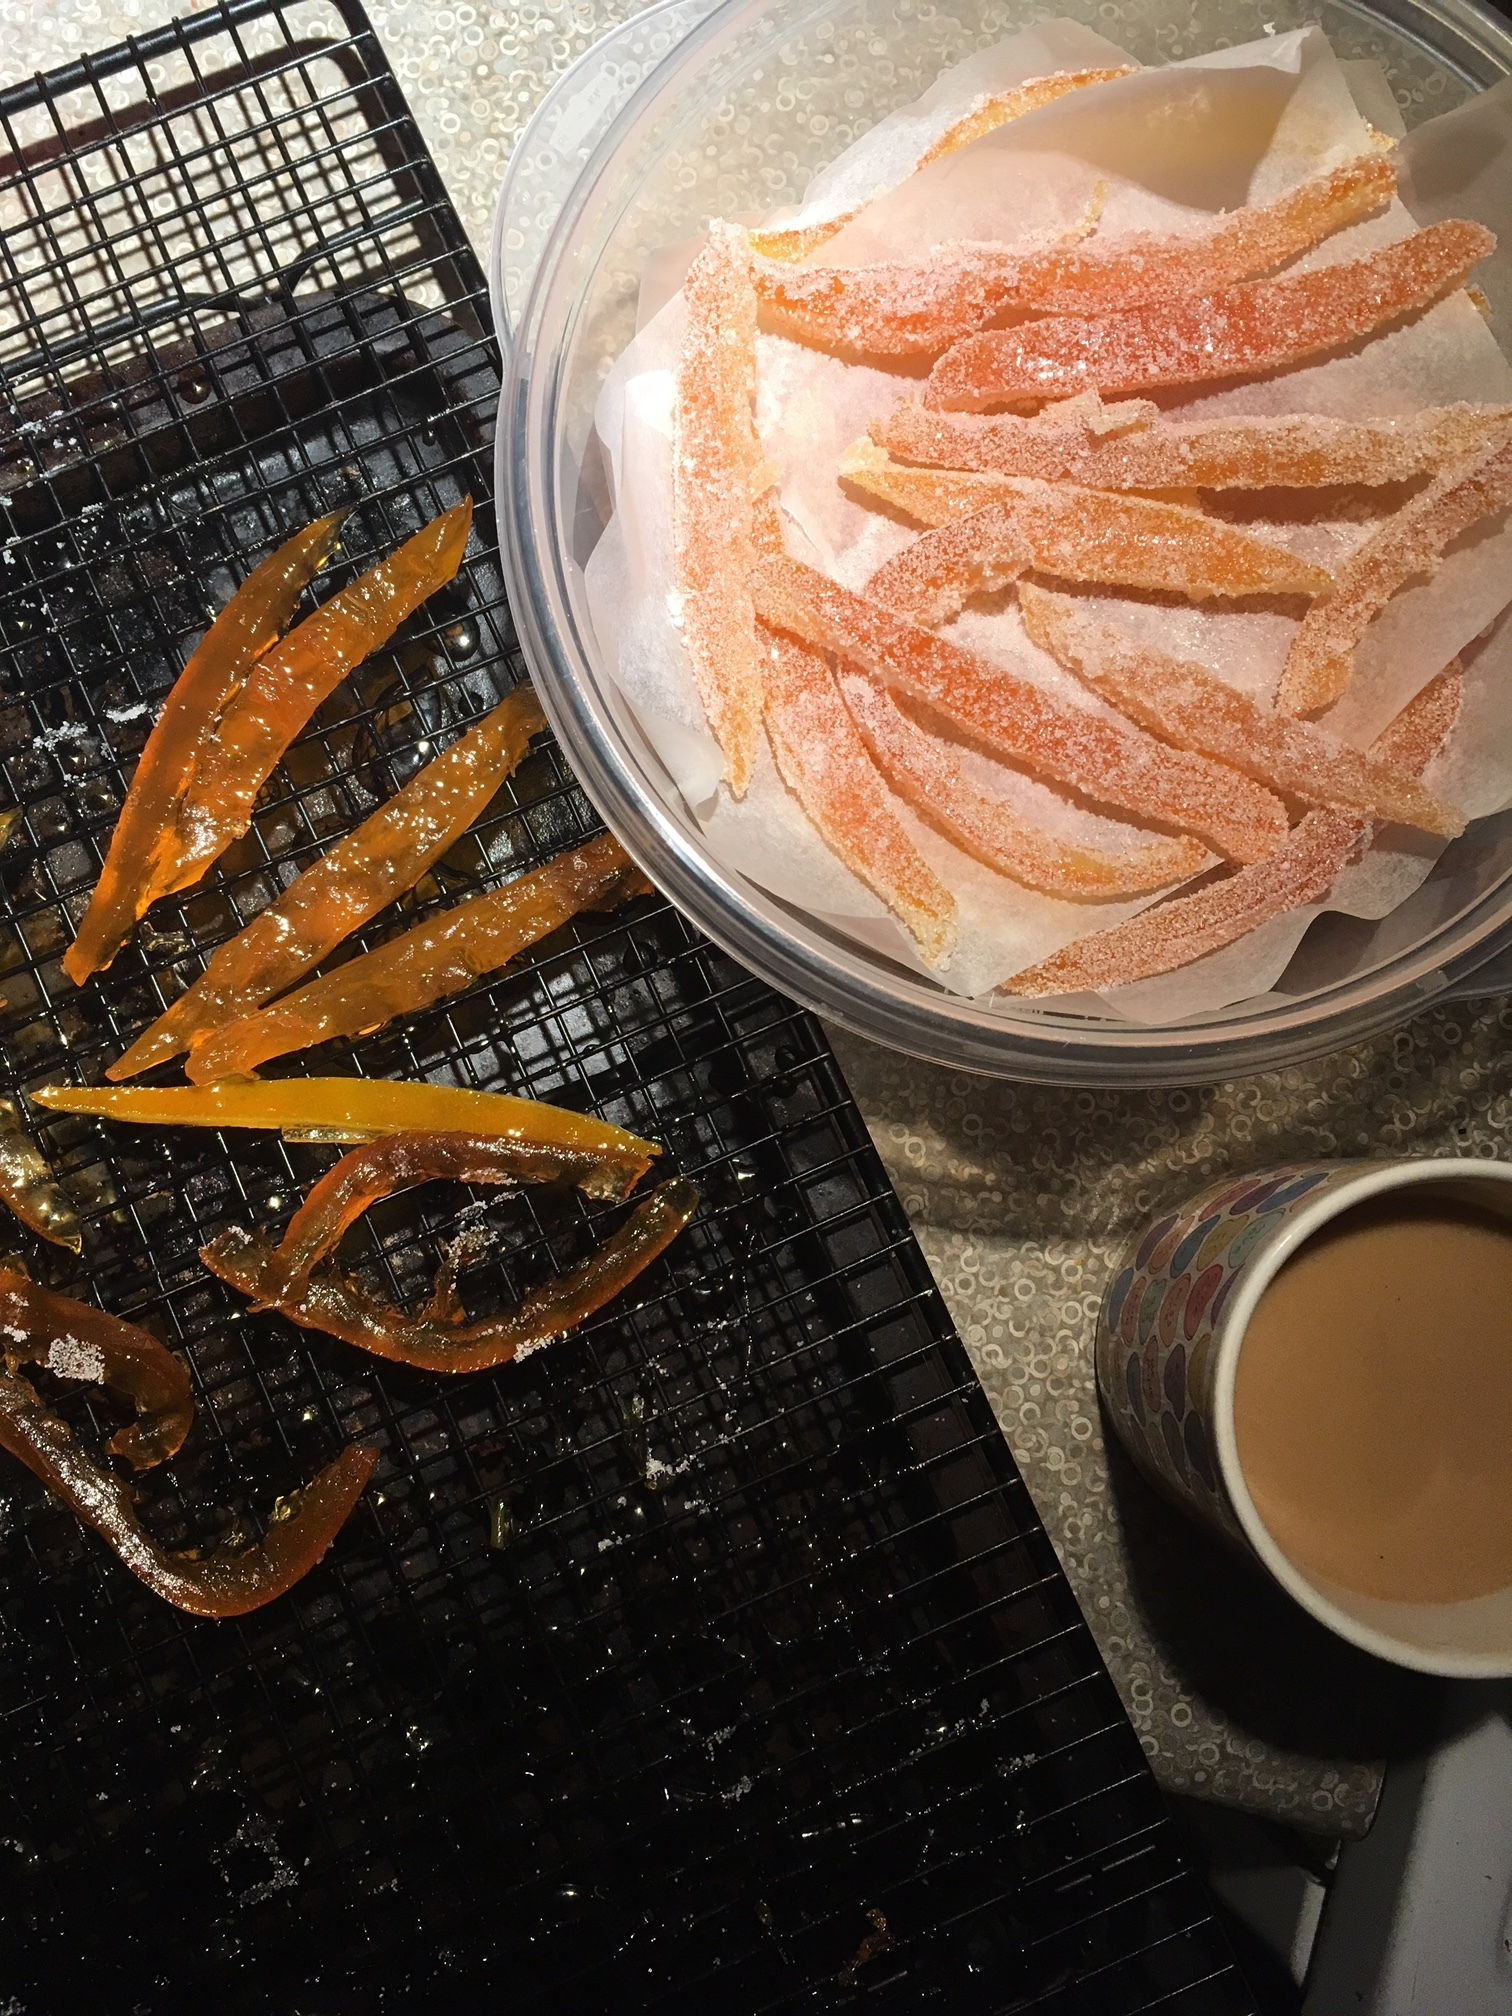 The next morning, toss the tacky peels in granulated sugar. (Drink coffee if performing this task at 7:00 am)